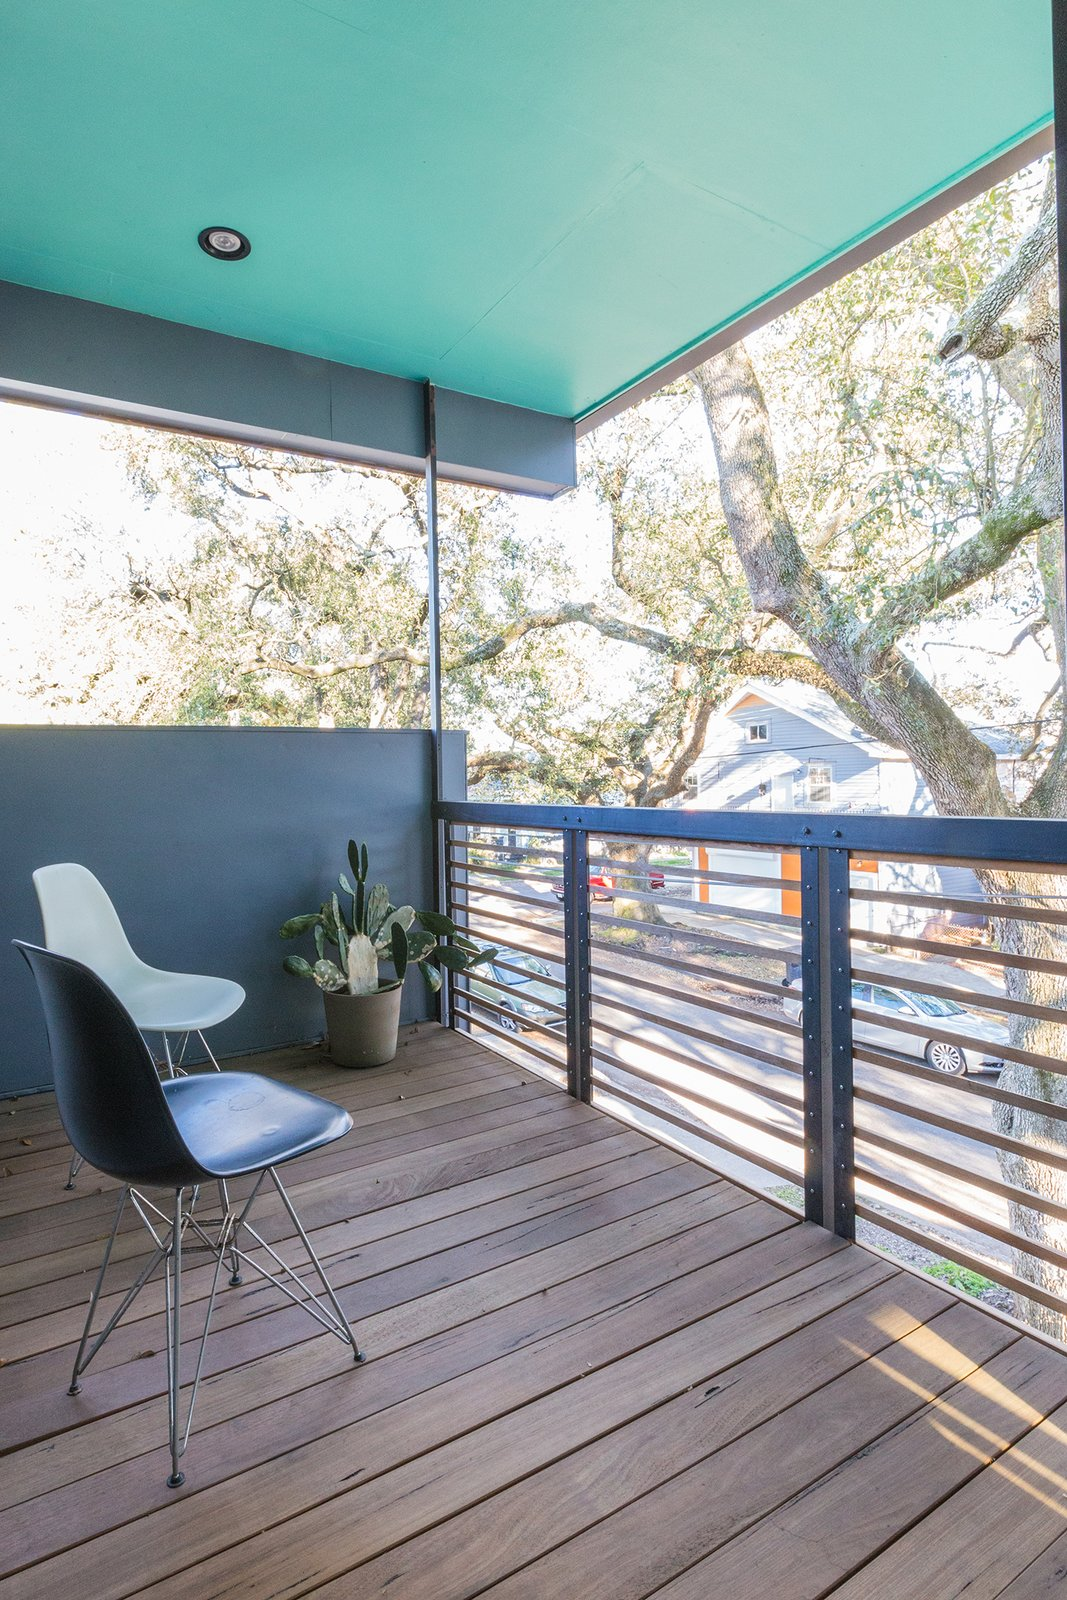 In addition to the generous side porch, the home includes a more intimate upstairs porch perched in the tree canopy.